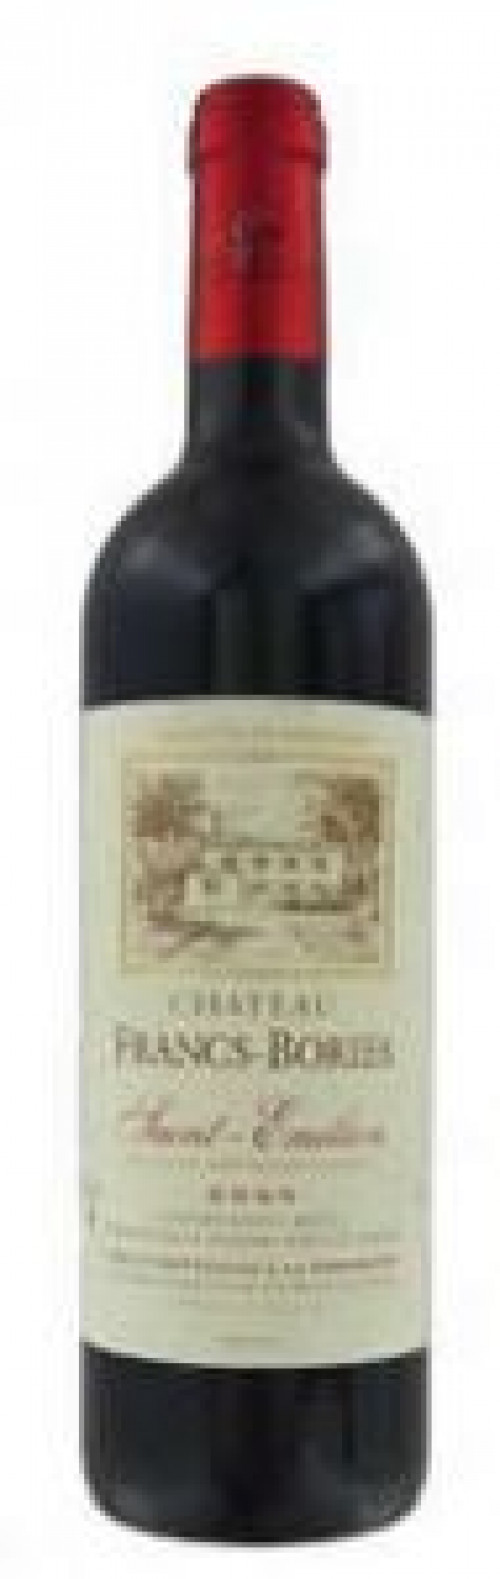 2018 Chateau Francs Bories Saint-Emilion 750ml